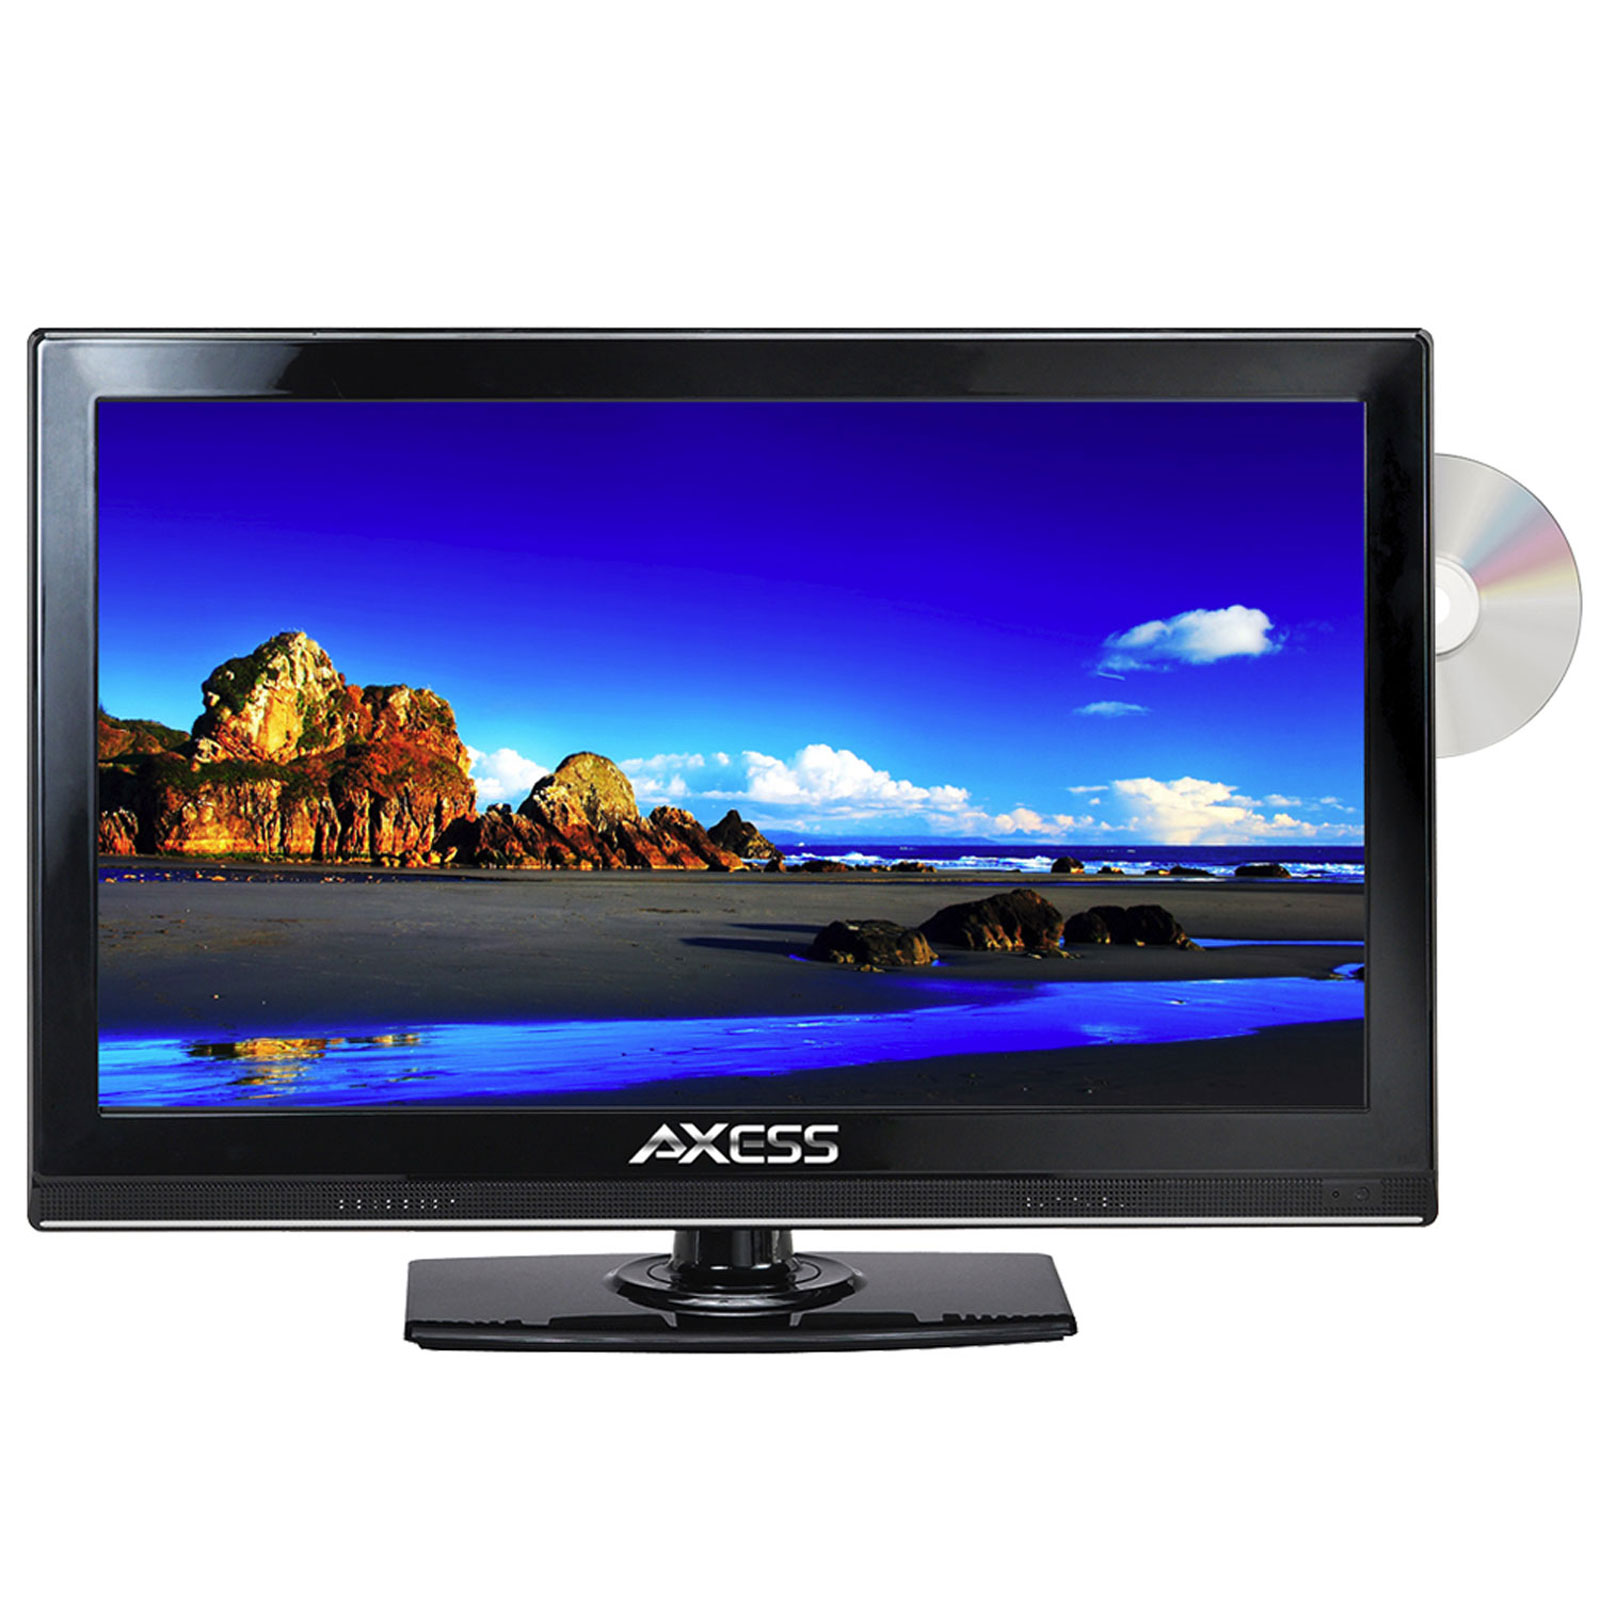 A S 15 P Led Tv With Built In Dvd Tvd1801 15 Walmart Com